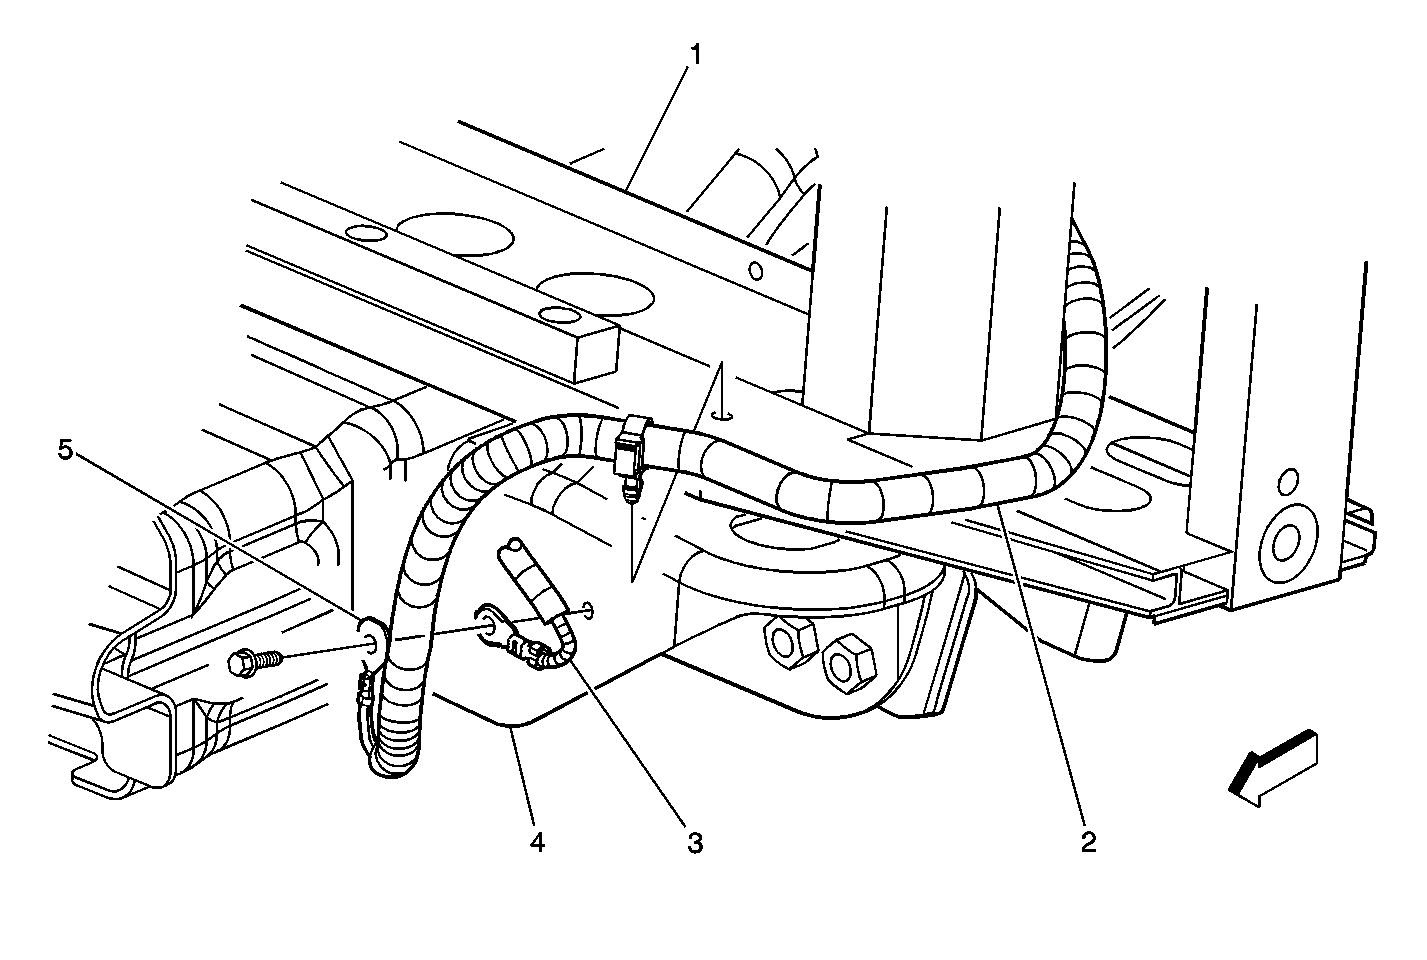 Acura Tl Fan Wiring Diagram on type specs, tire size, pimped out, full specs,